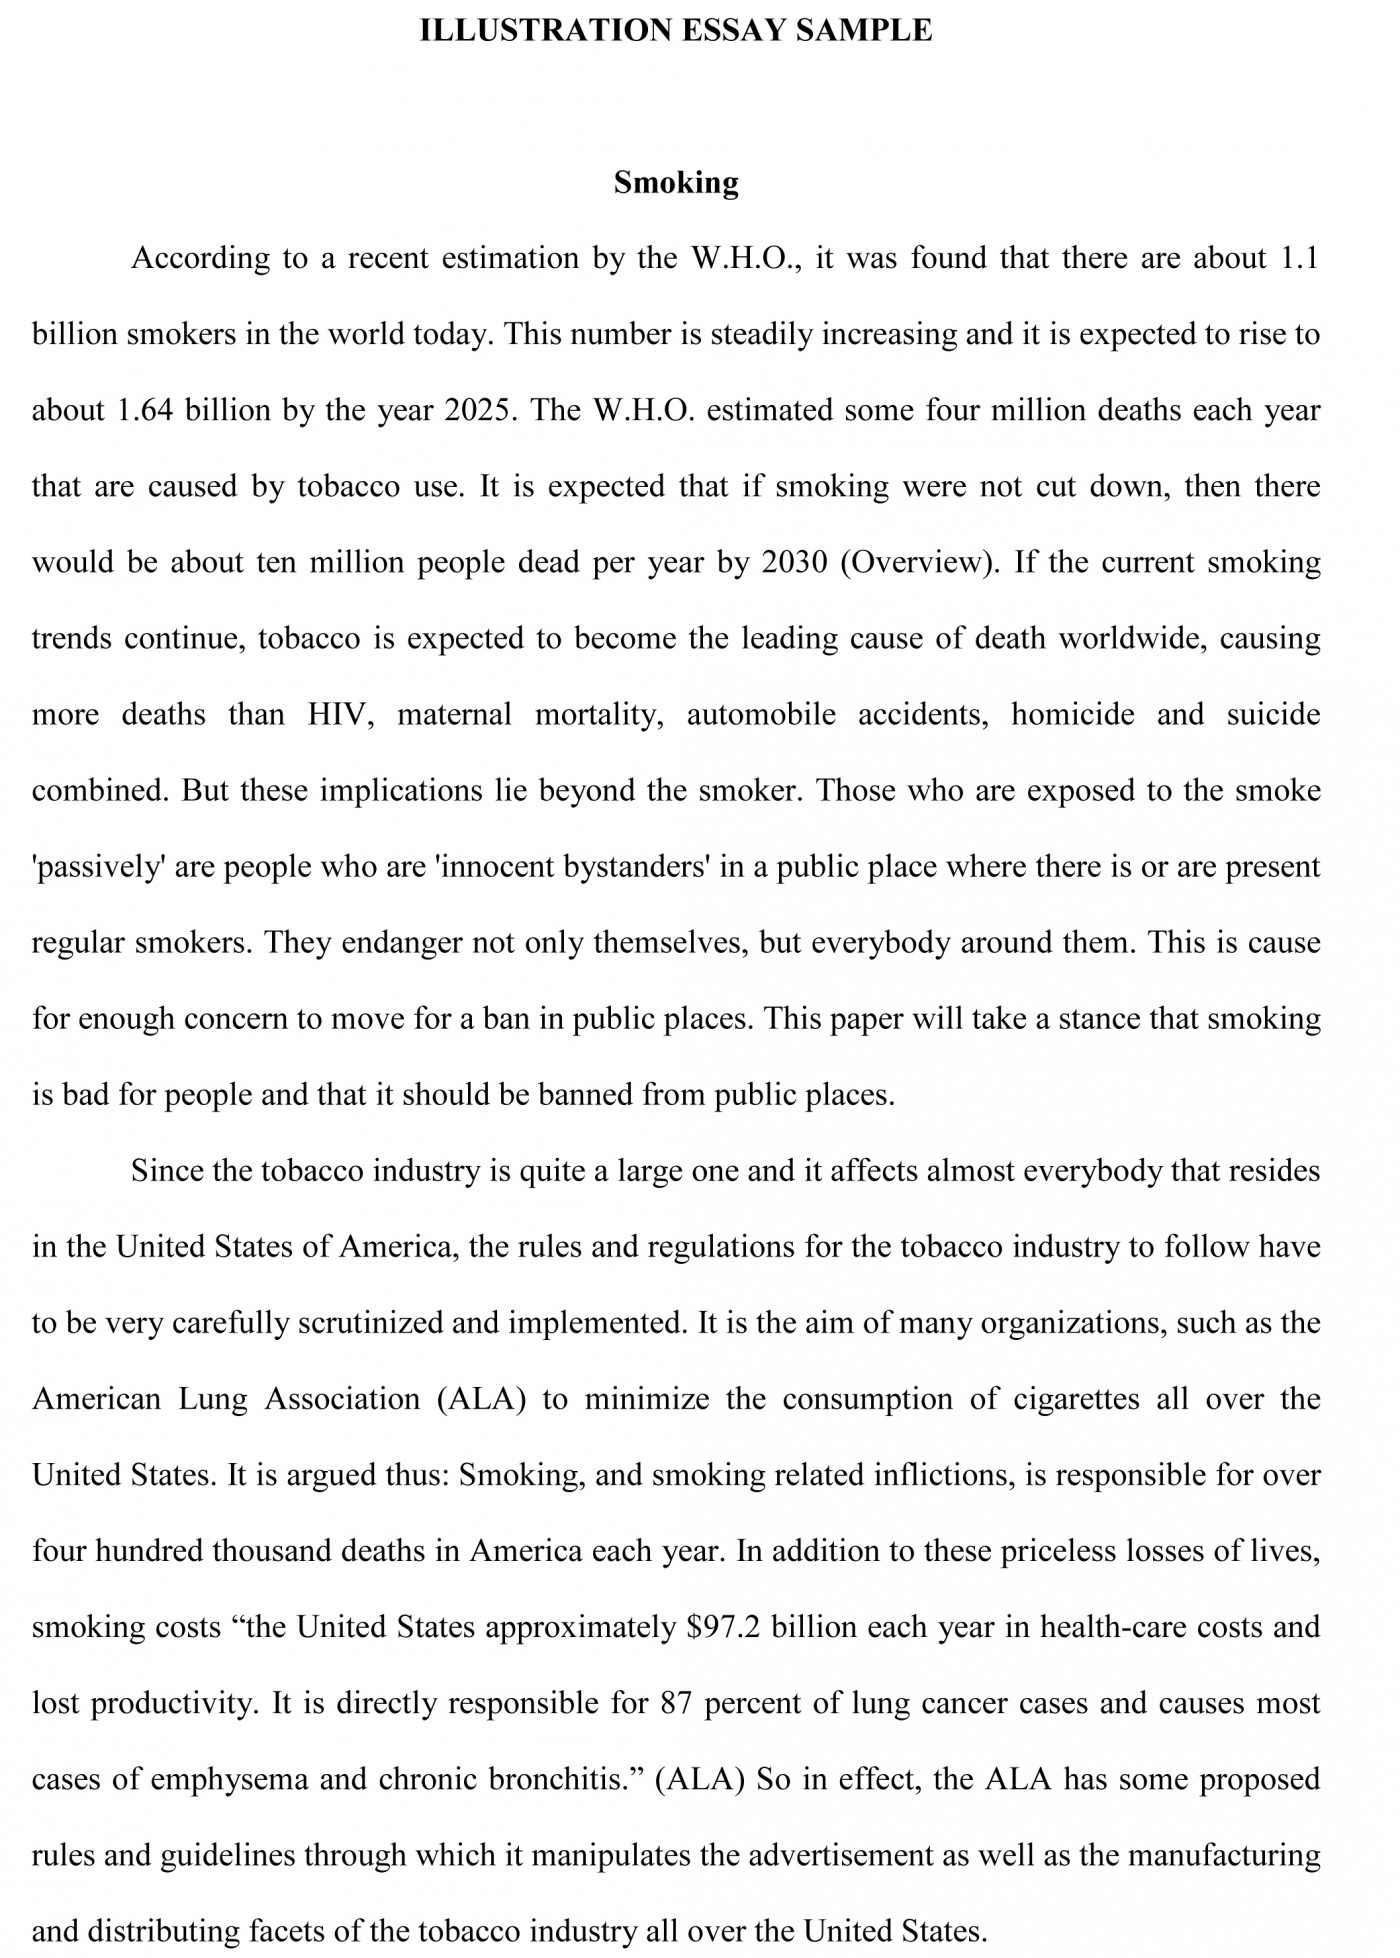 014 Illustration Essay Sample How To Write Autobiography Exceptional A An Introduction Autobiographical For College Grad School 1400